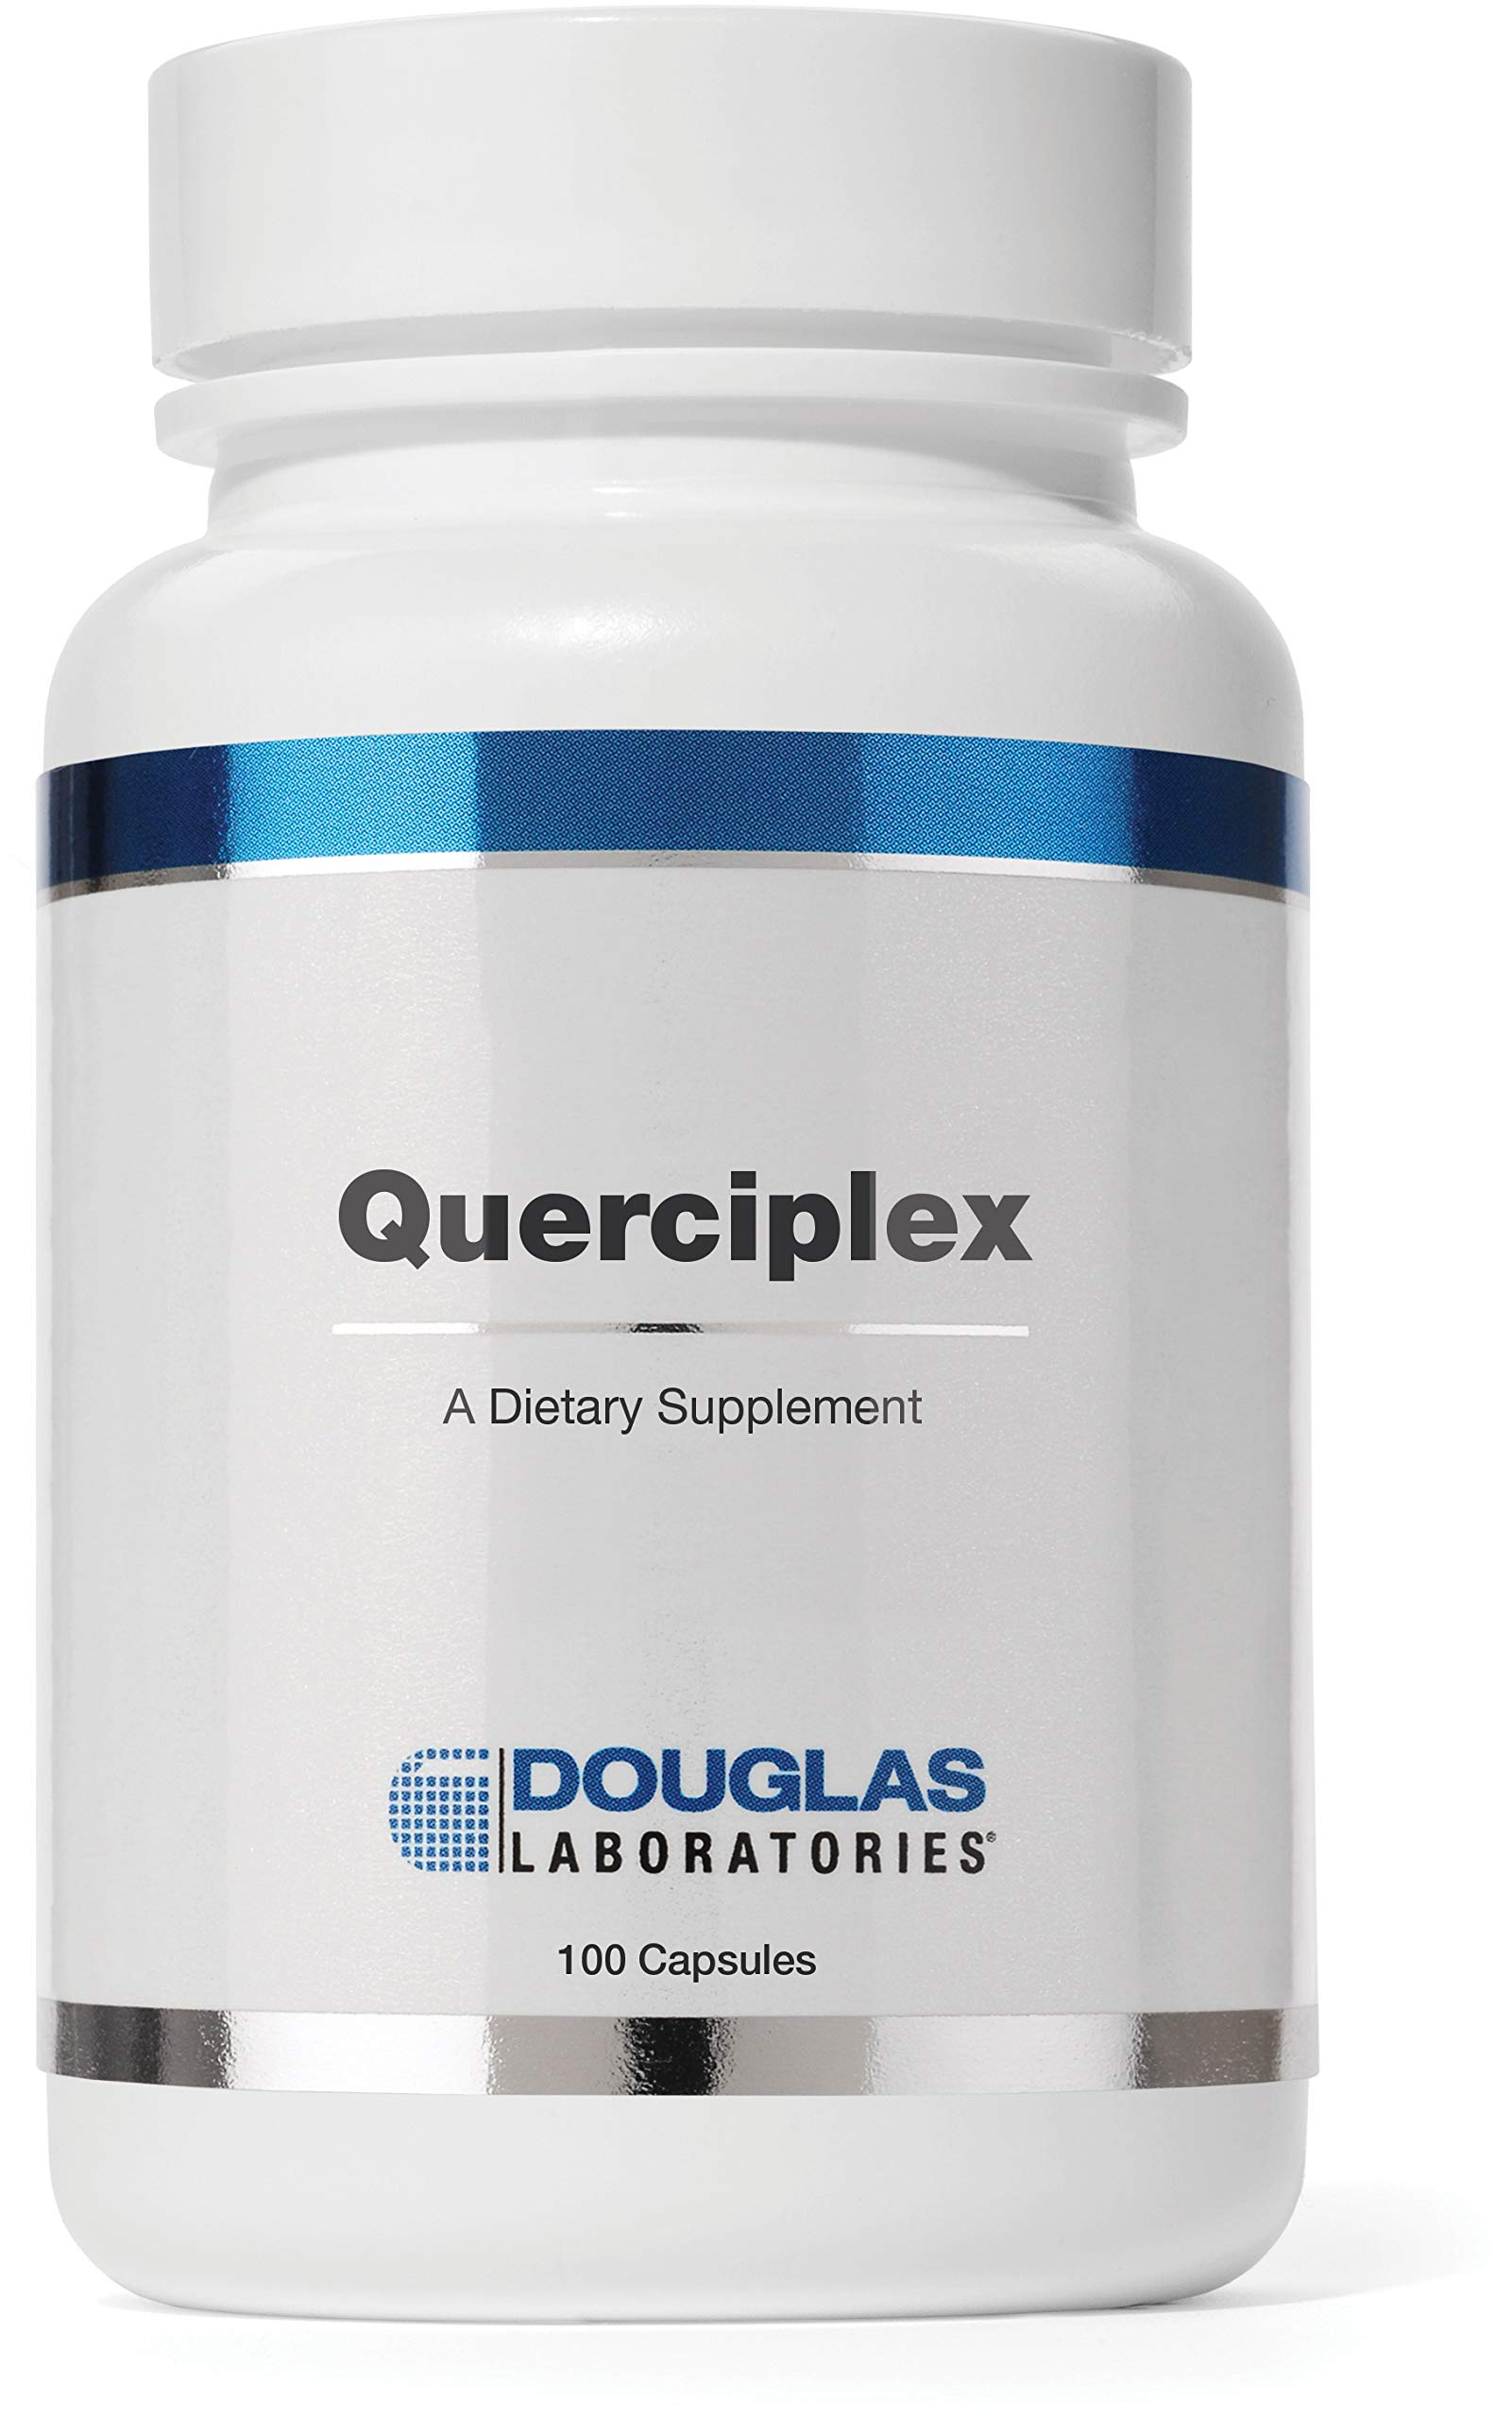 Douglas Laboratories - Querciplex - Combination of Quercetin and Bromelain to Support Immune Cell Function and Vascular Health* - 100 Capsules by Douglas Laboratories